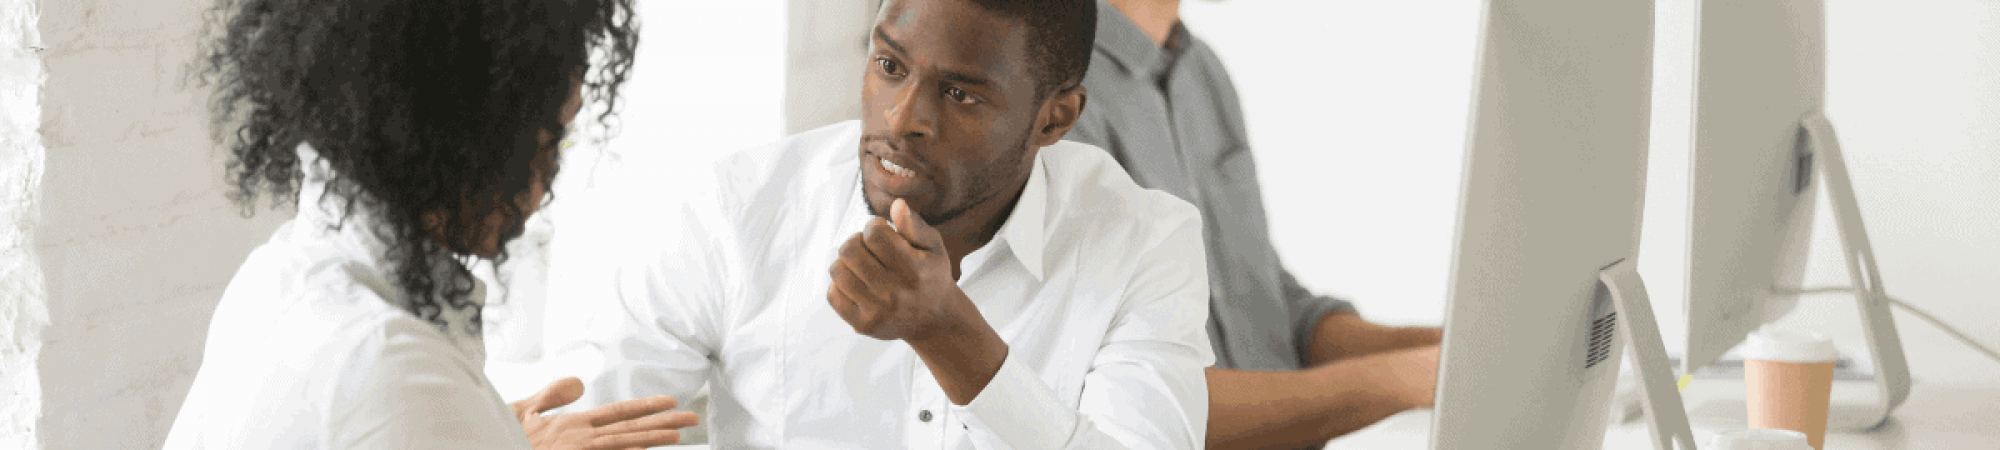 Conflict Resolution in the Workplace 5 Basics to Remember